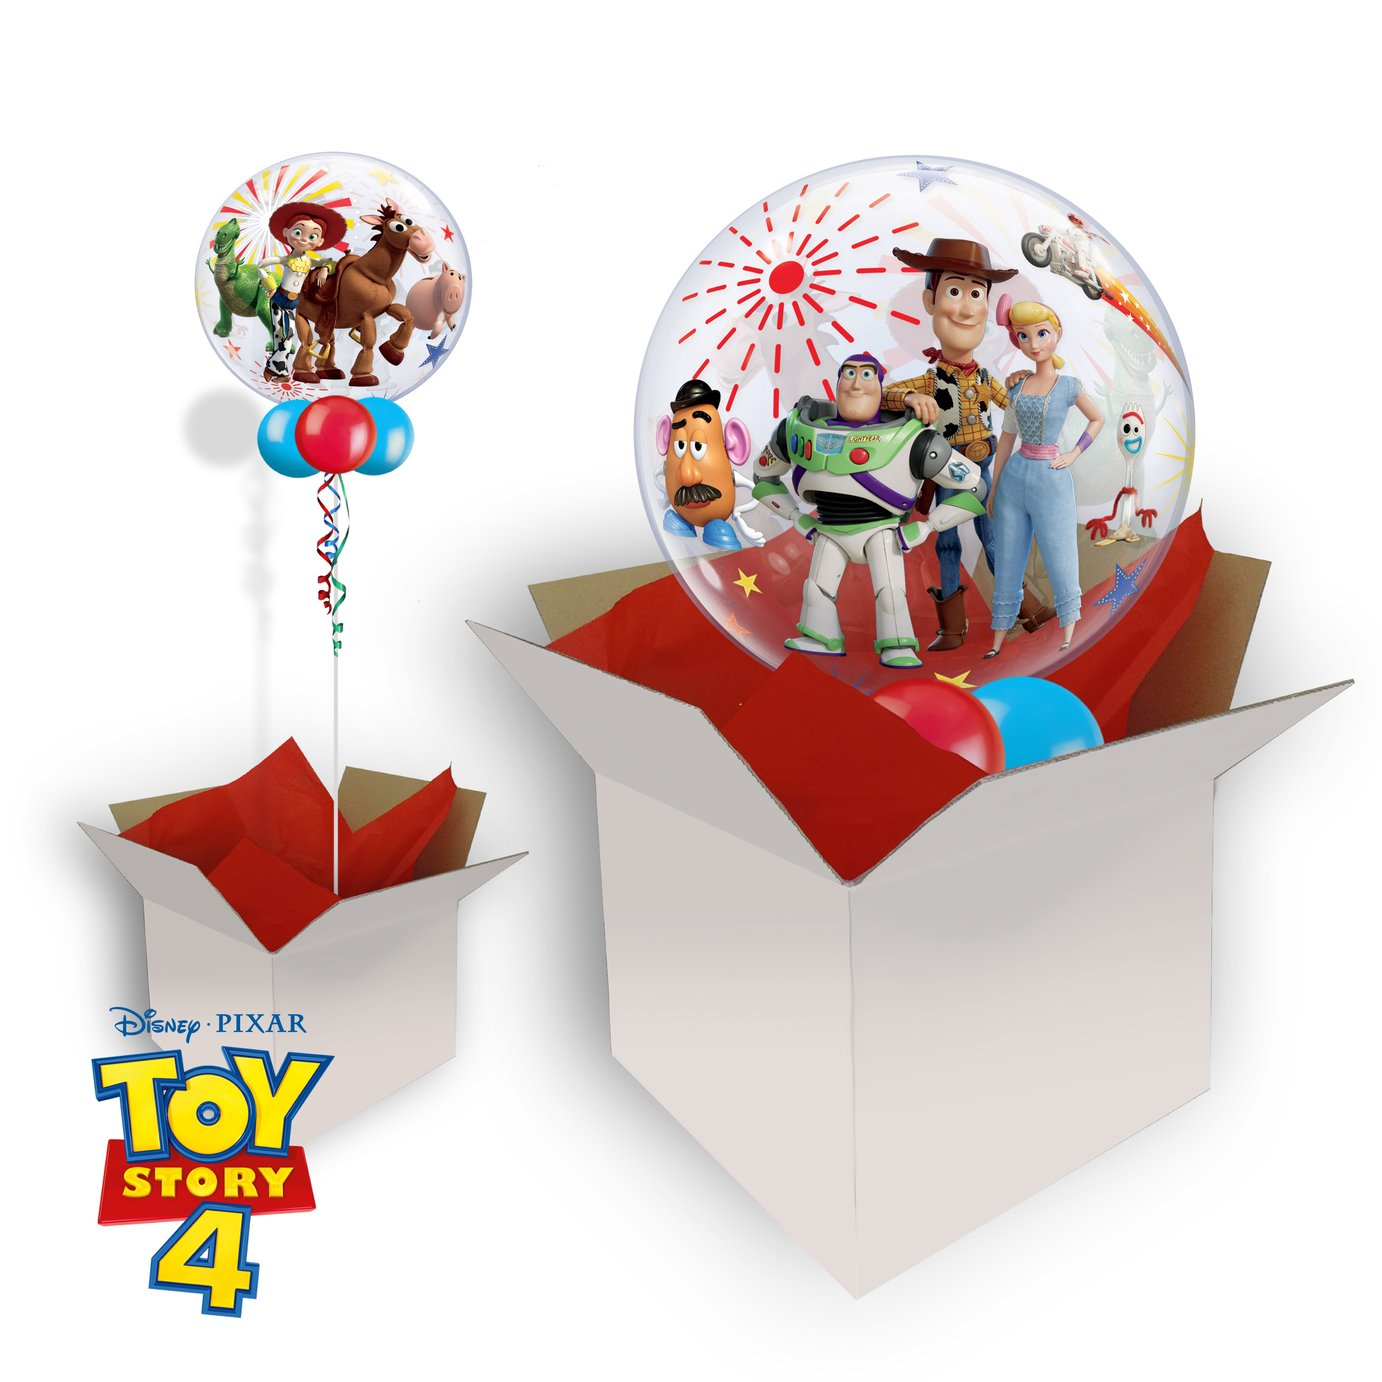 Disney Toy Story 4 22 Inch Bubble Balloon In A Box